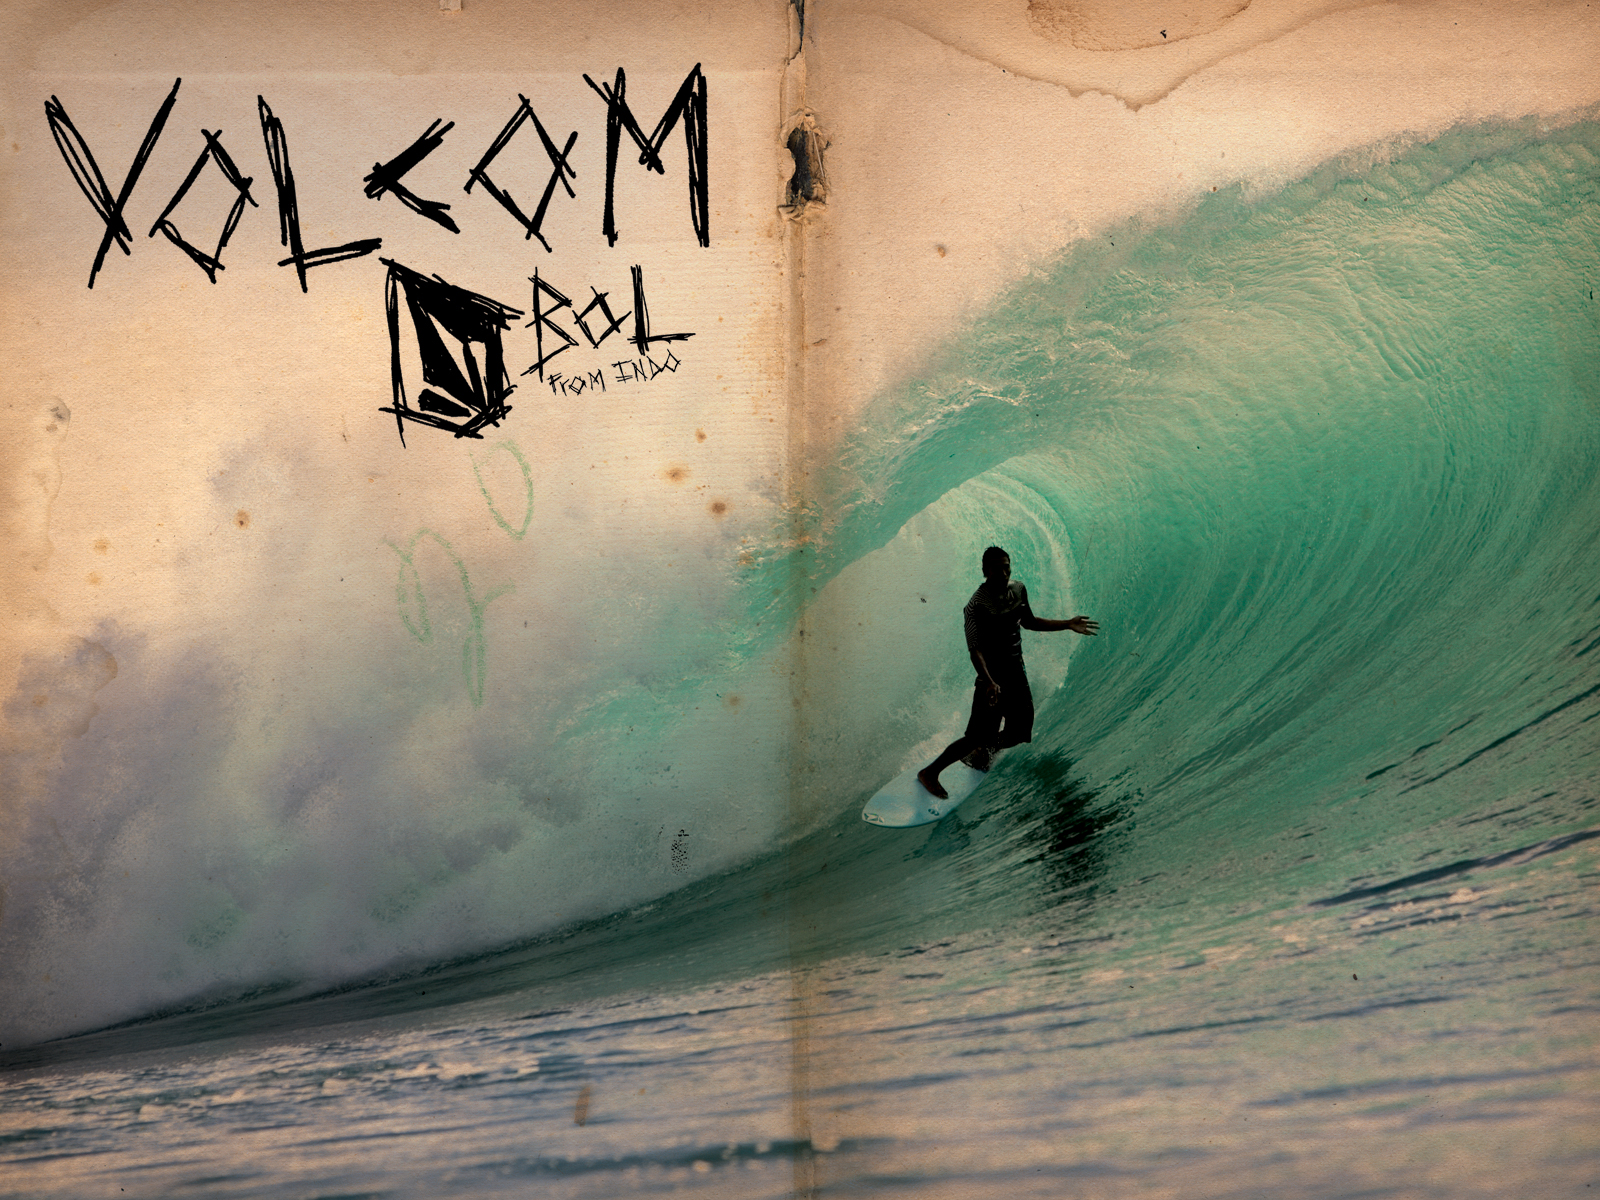 1600x1200 - Volcom Backgrounds 36